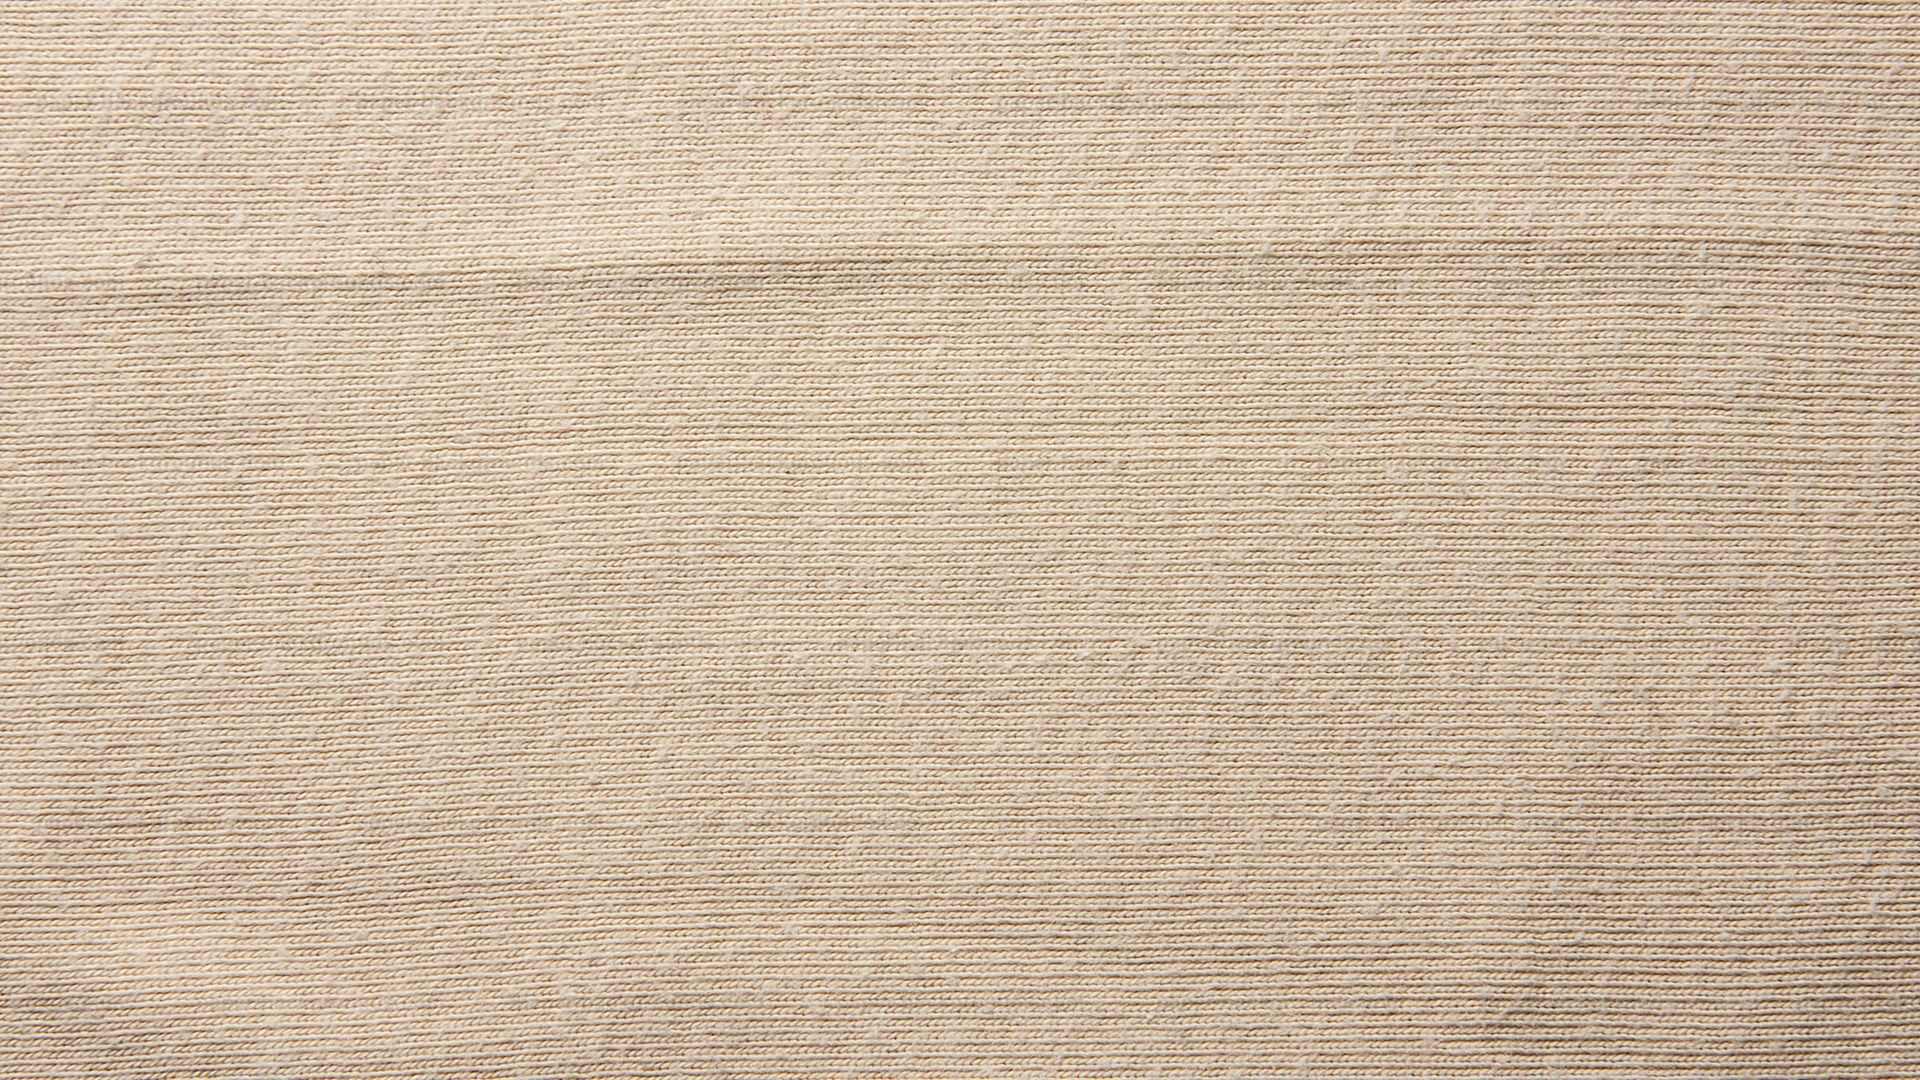 Paper Backgrounds Knit Royalty Free HD